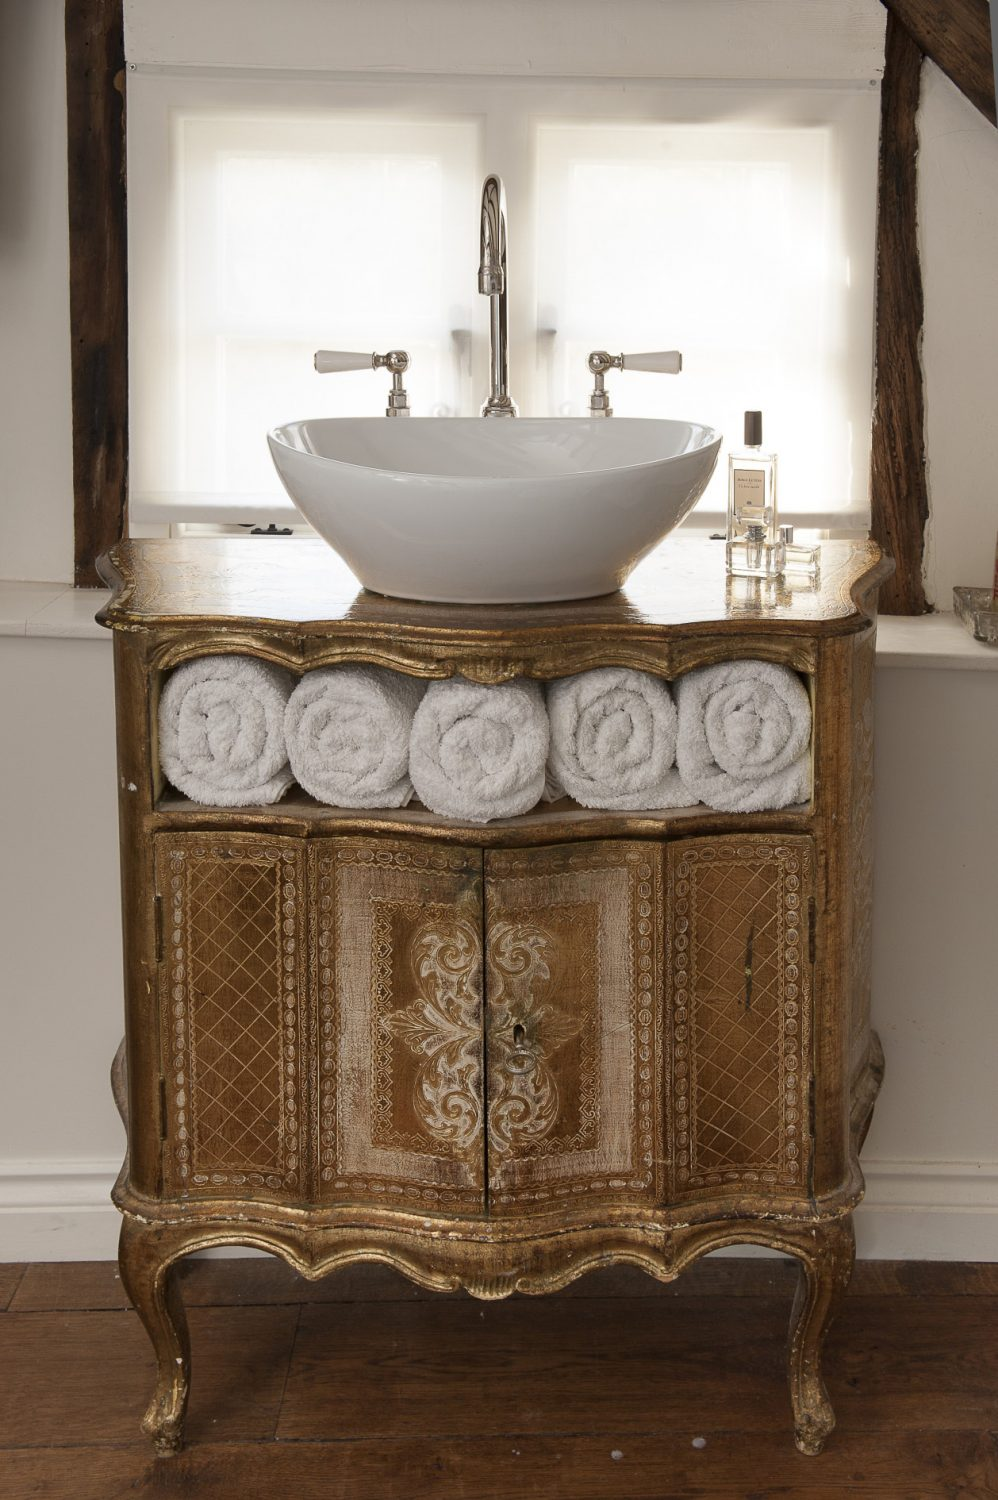 The elegant basin on a former Italian telephone table from La Belle Étoffe in Frome